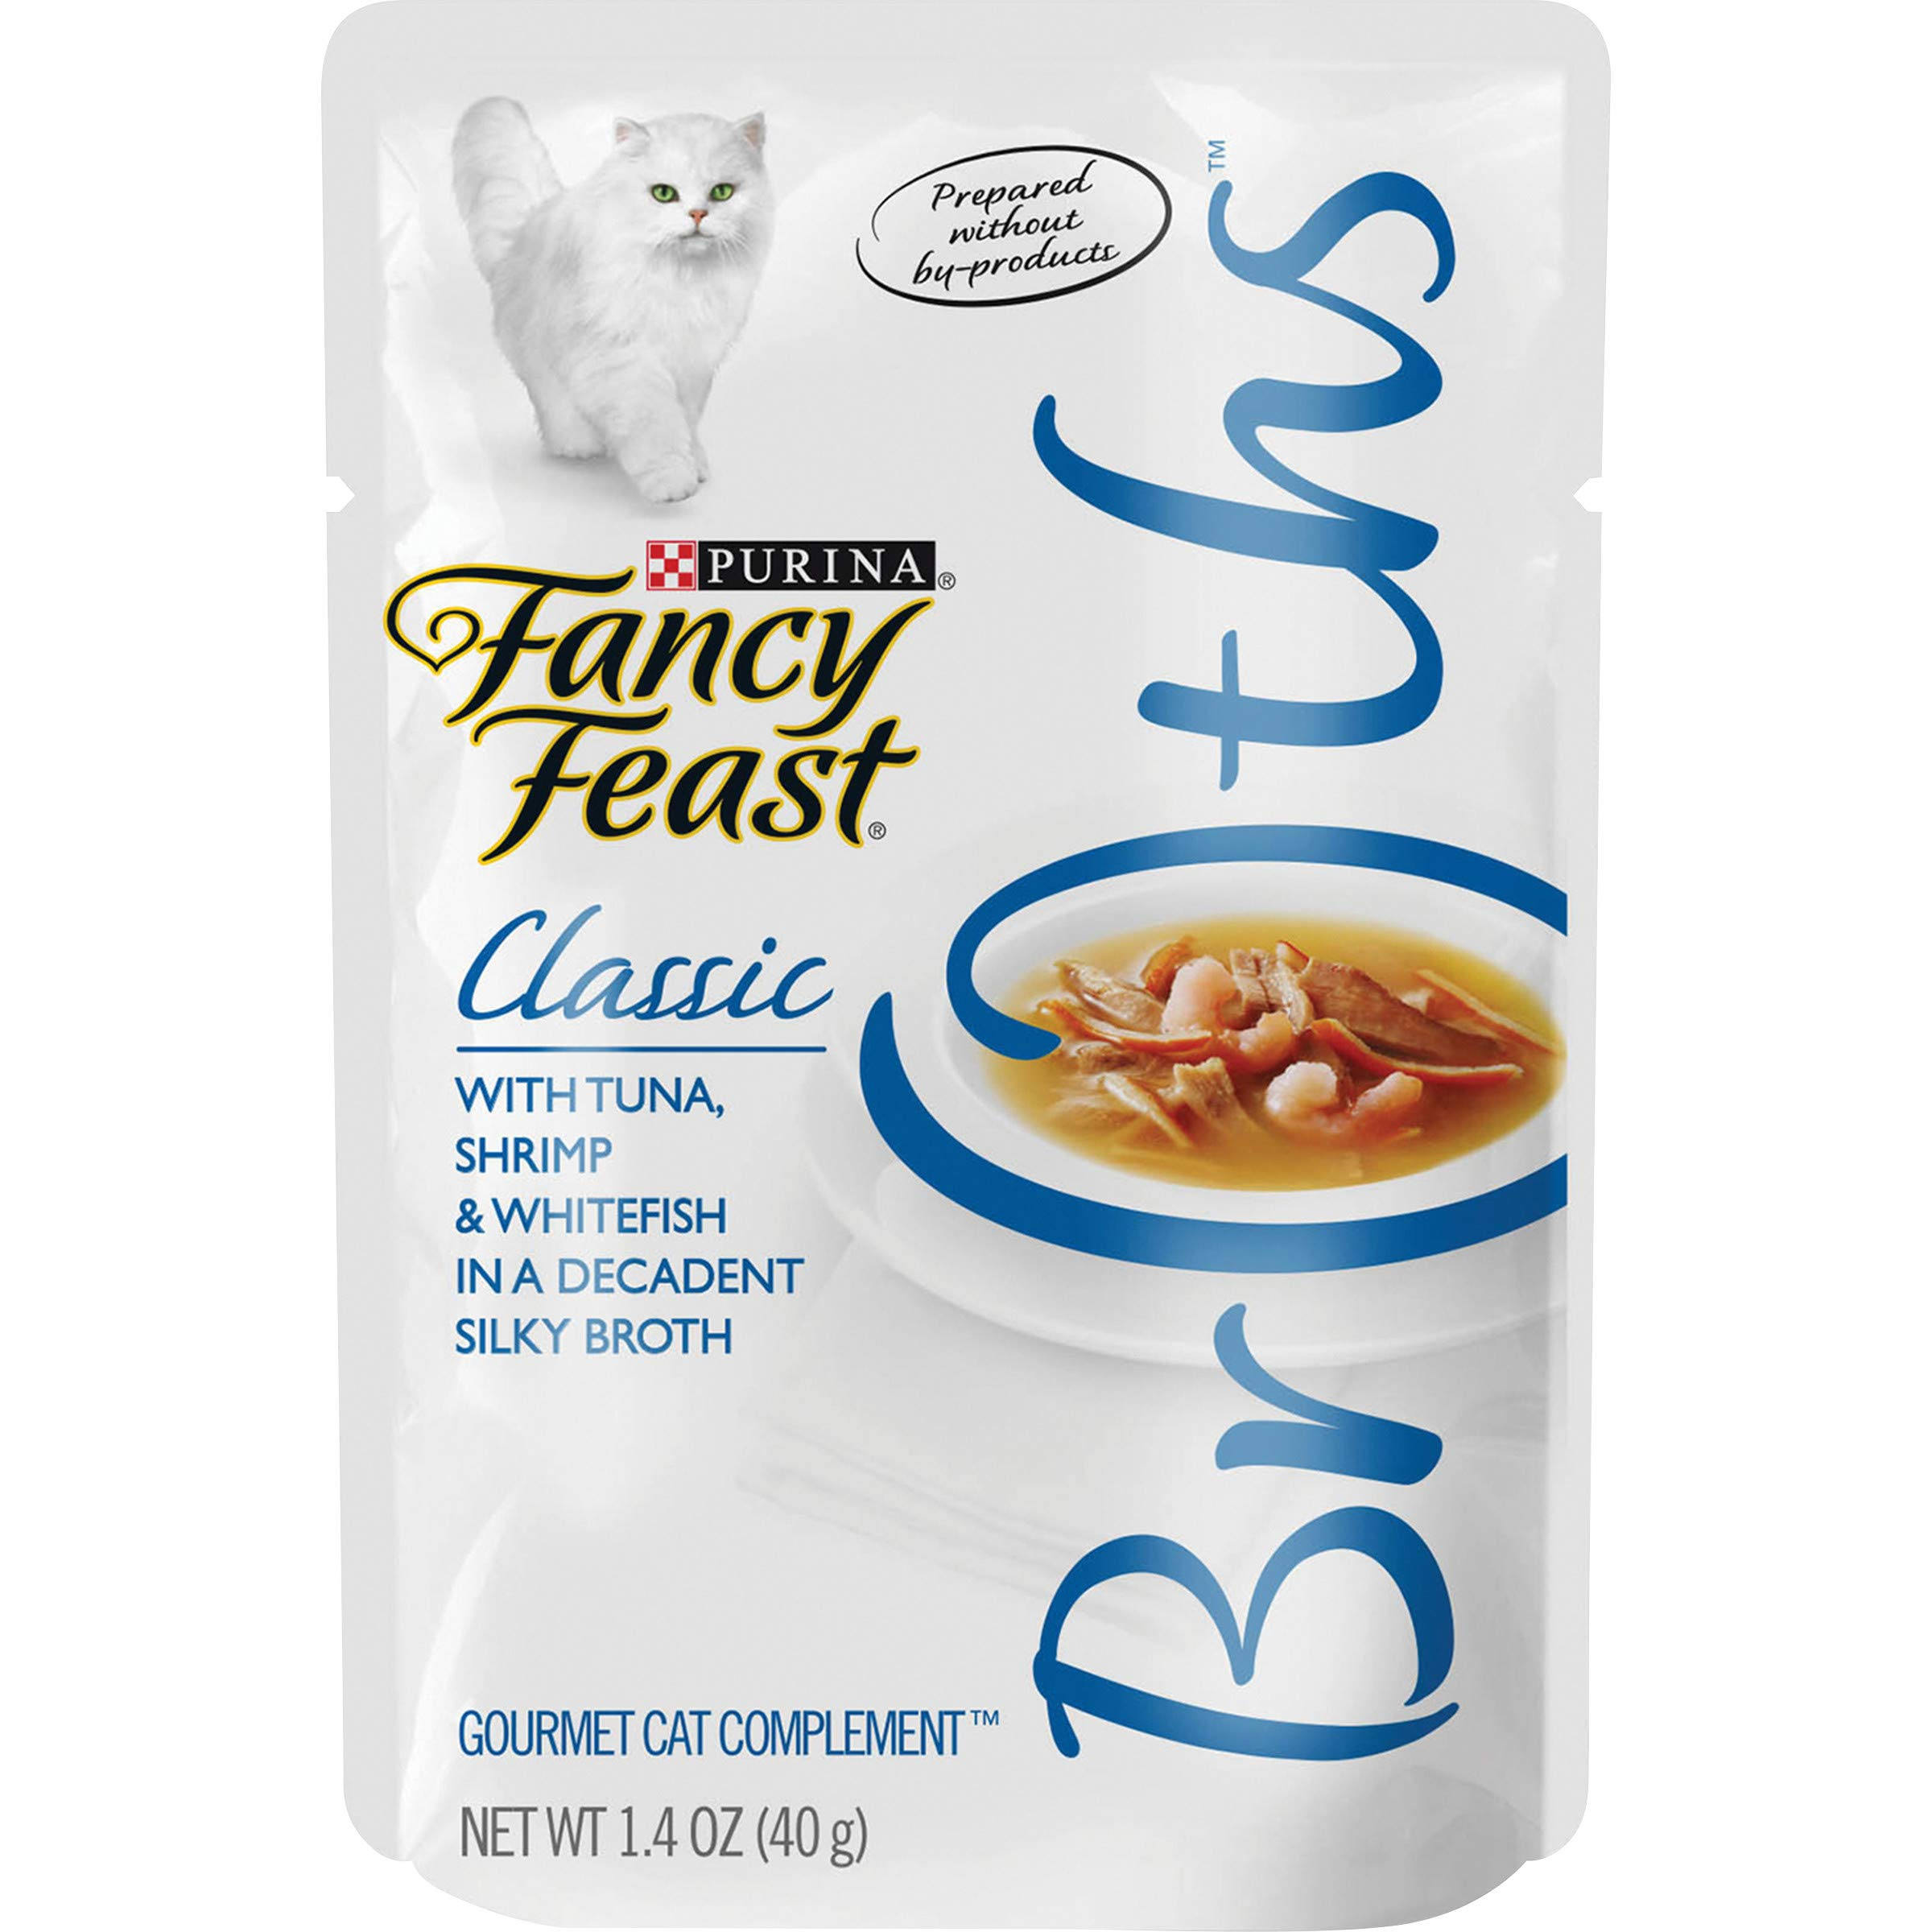 Purina Fancy Feast Broth Wet Cat Food Complement, Broths With Tuna, Shrimp & Whitefish - (16) 1.4 oz. Pouches by Purina Fancy Feast